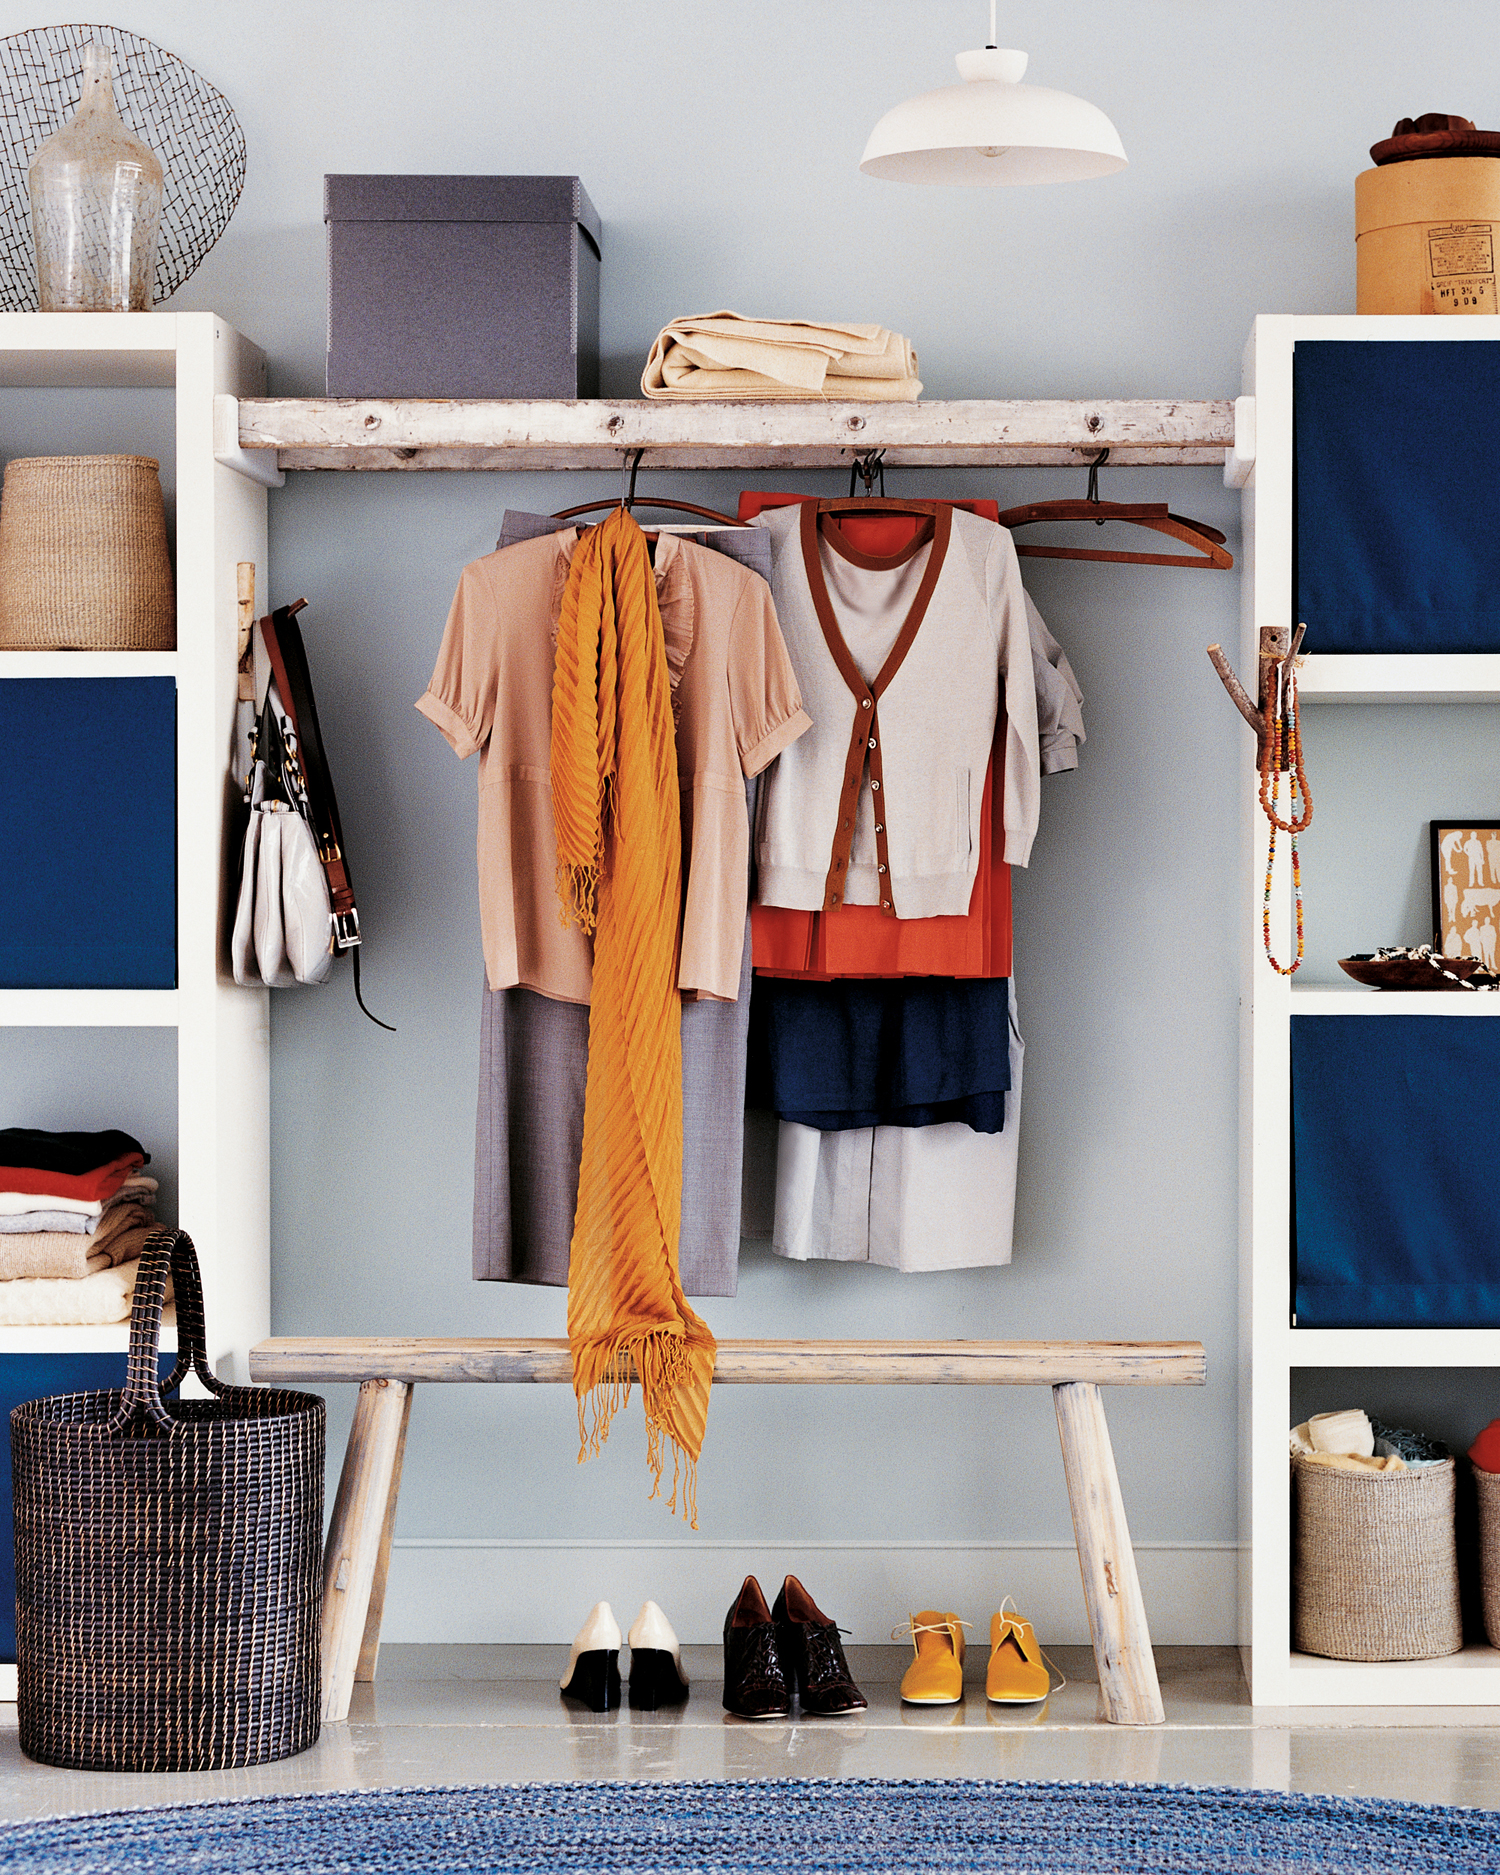 walk-by closet made from reclaimed wood